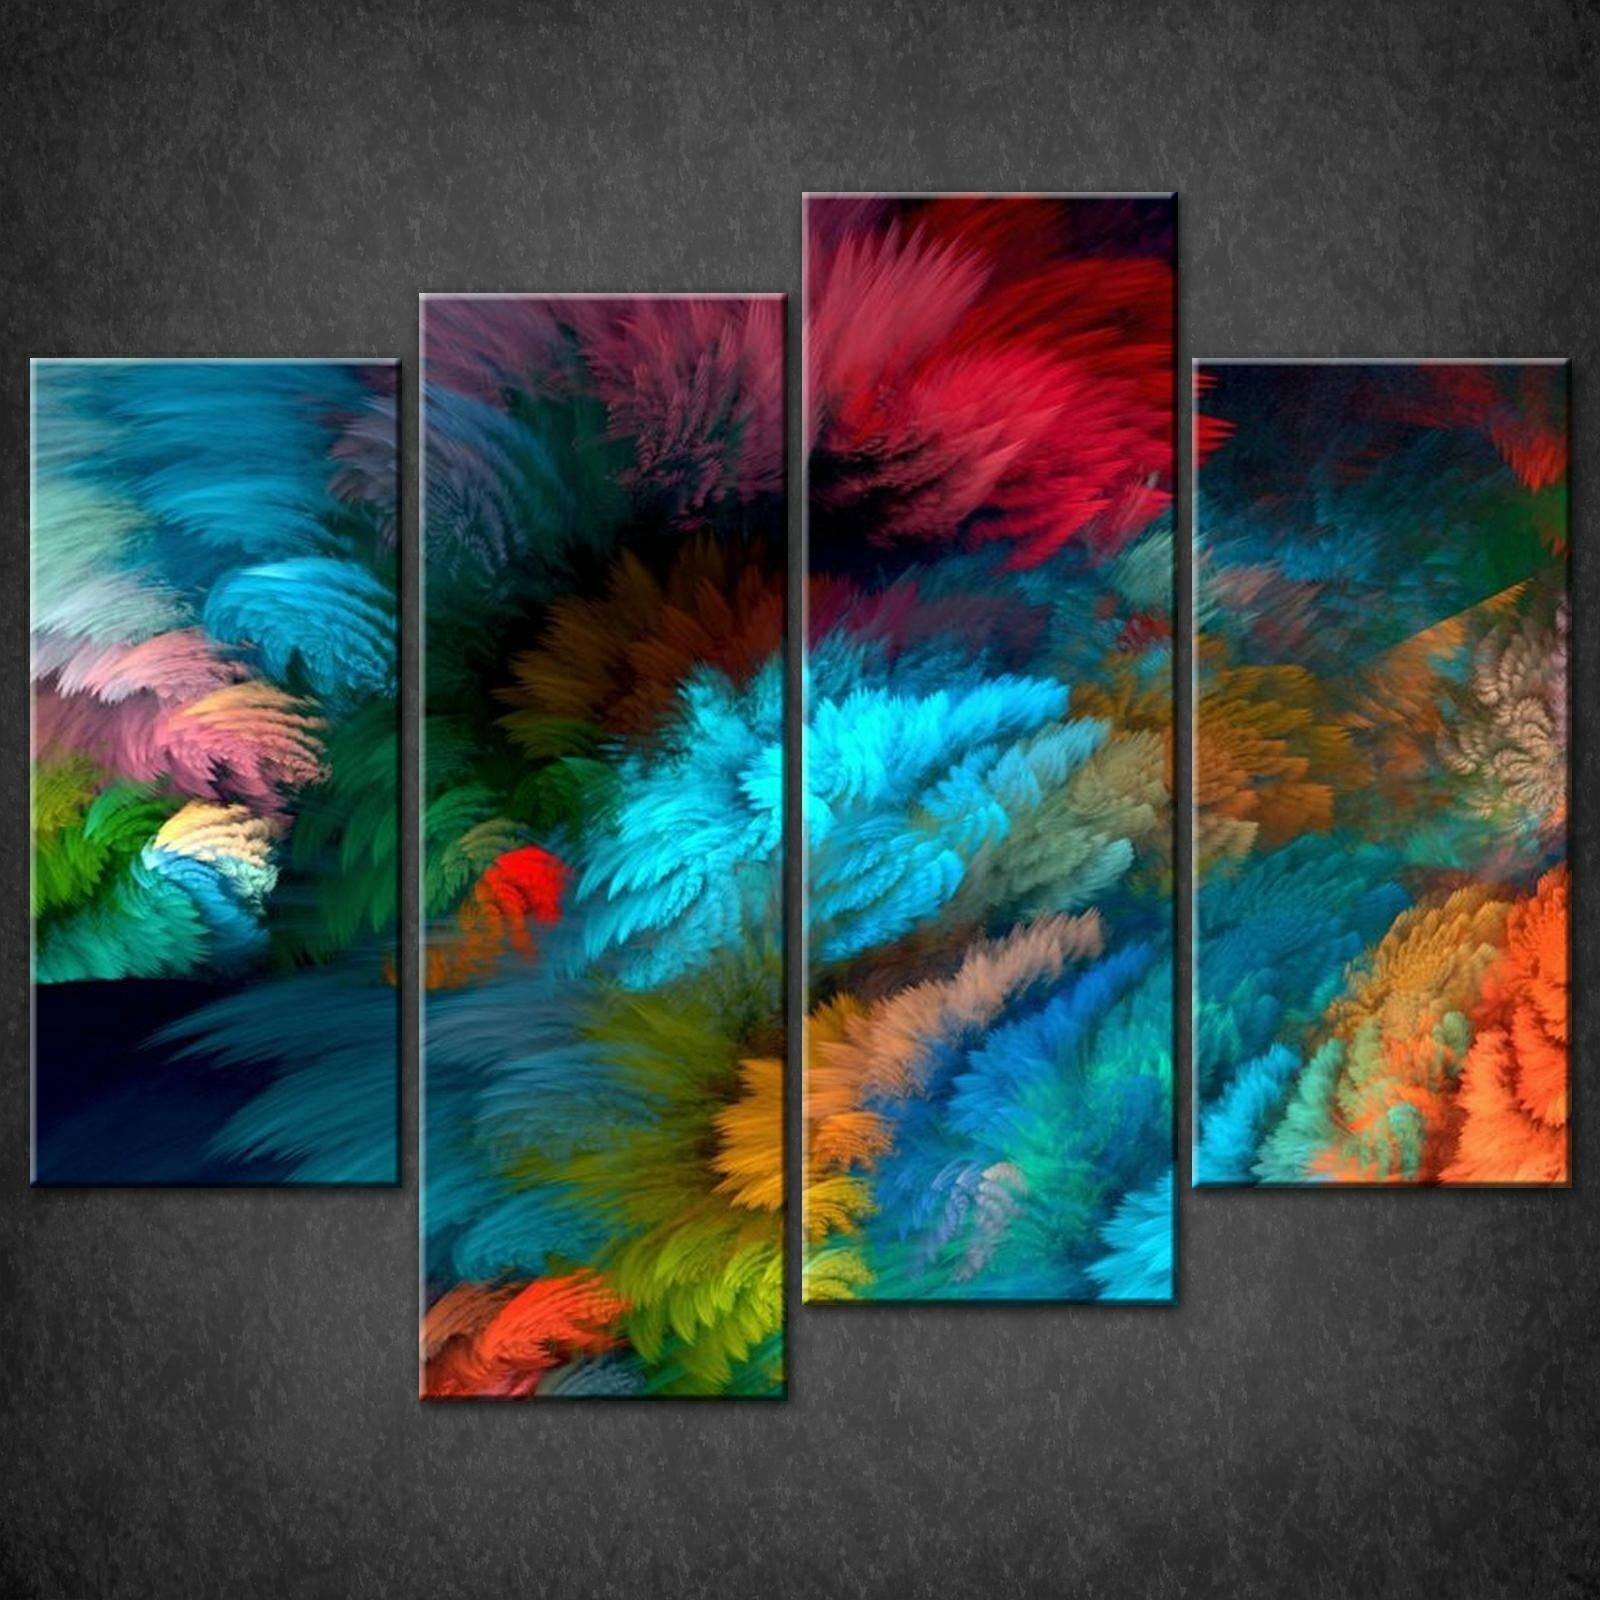 Decor: Large Abstract Colourful Split Canvas Wall Art Pictures Prints Intended For Most Recent Abstract Canvas Wall Art (Gallery 13 of 20)